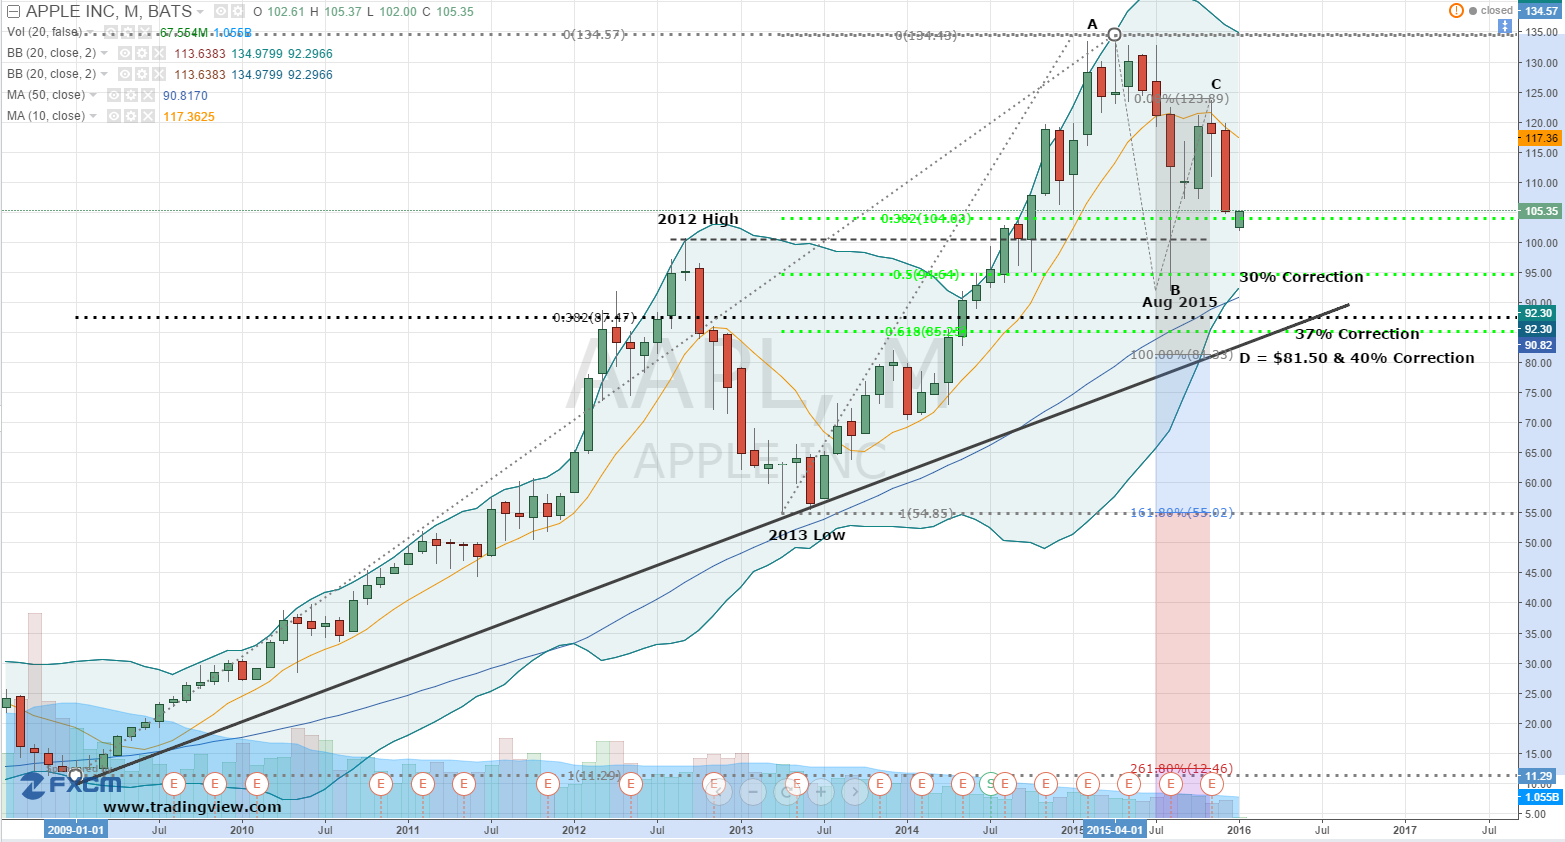 aapl chart monthly apple inc investorplace discount enlarge rests weakness bull buying shares moving case into